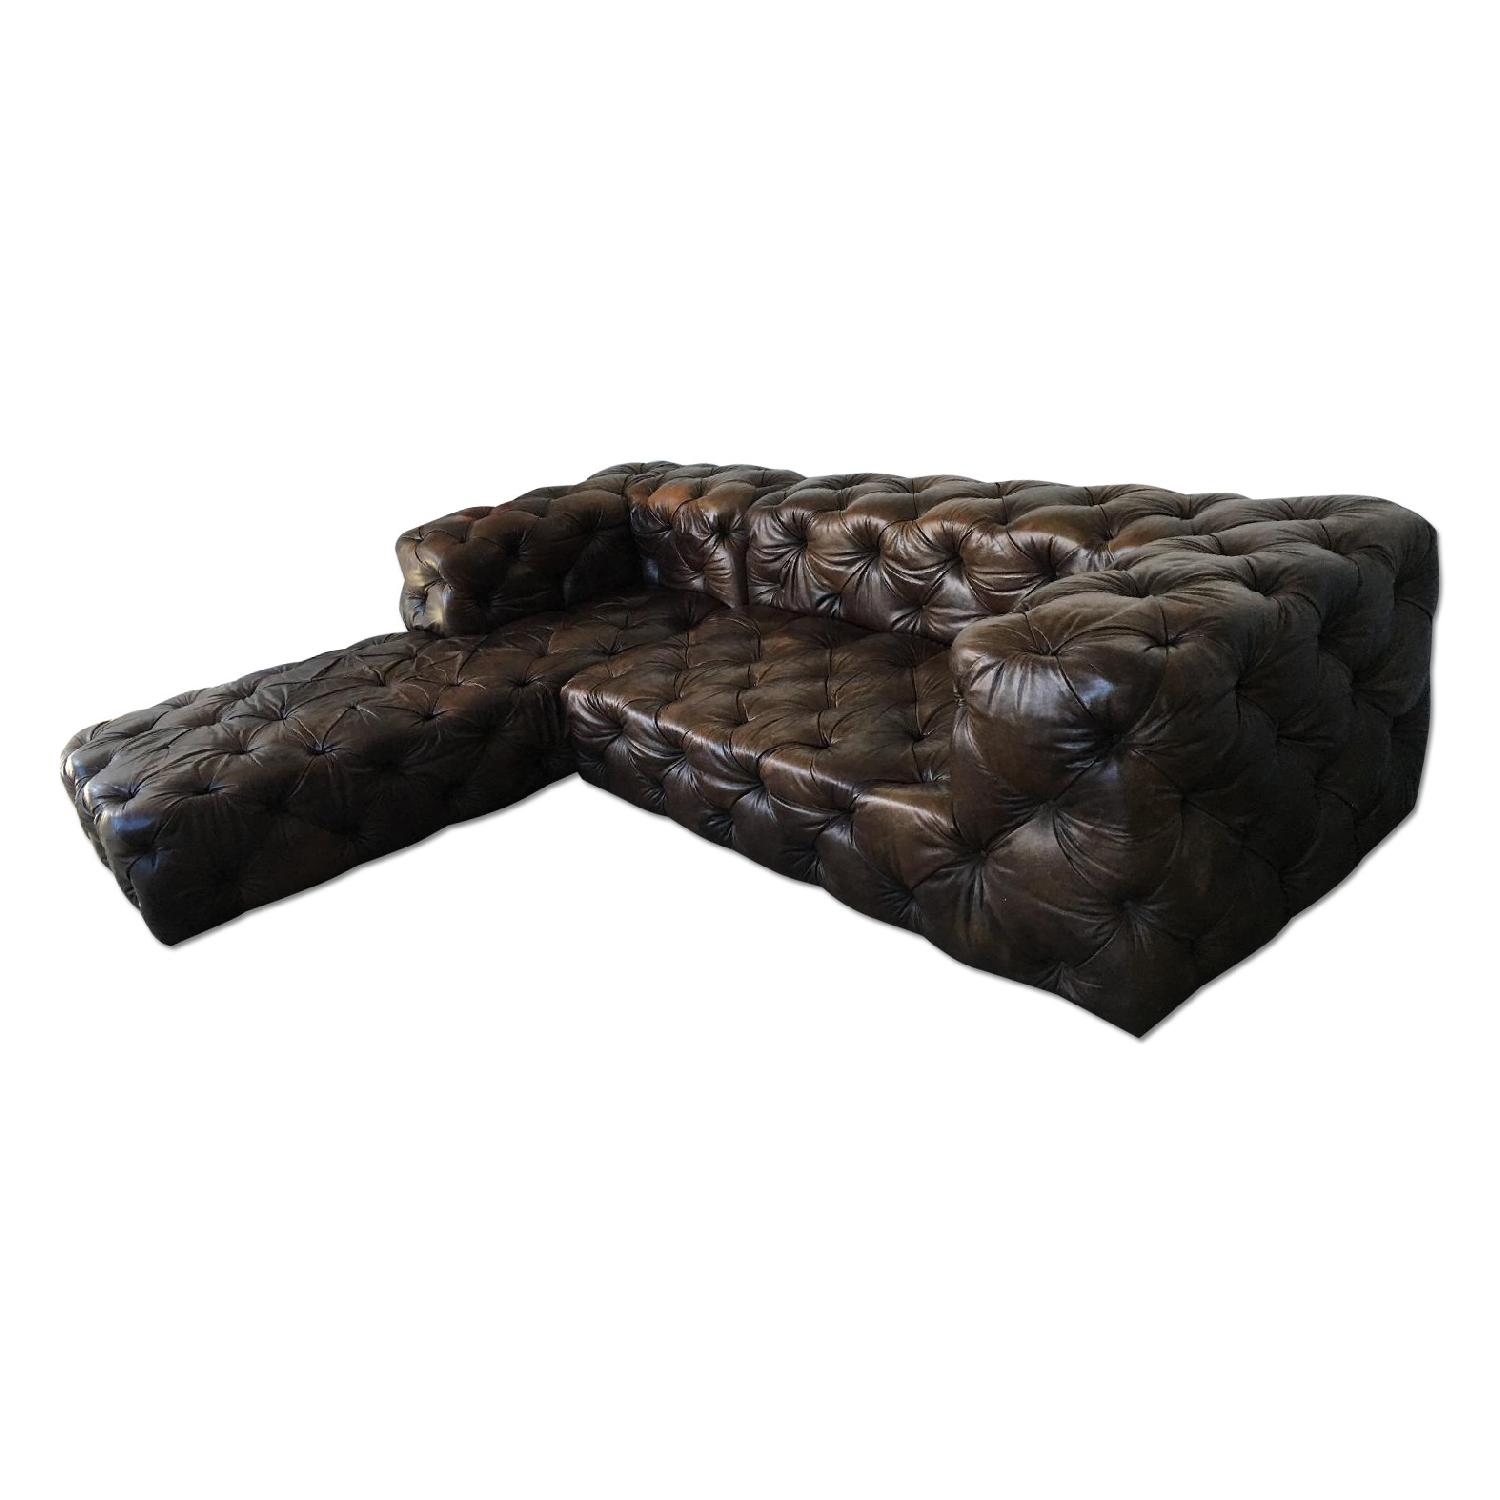 Restoration Hardware Brown Leather Sectional Couch - image-0